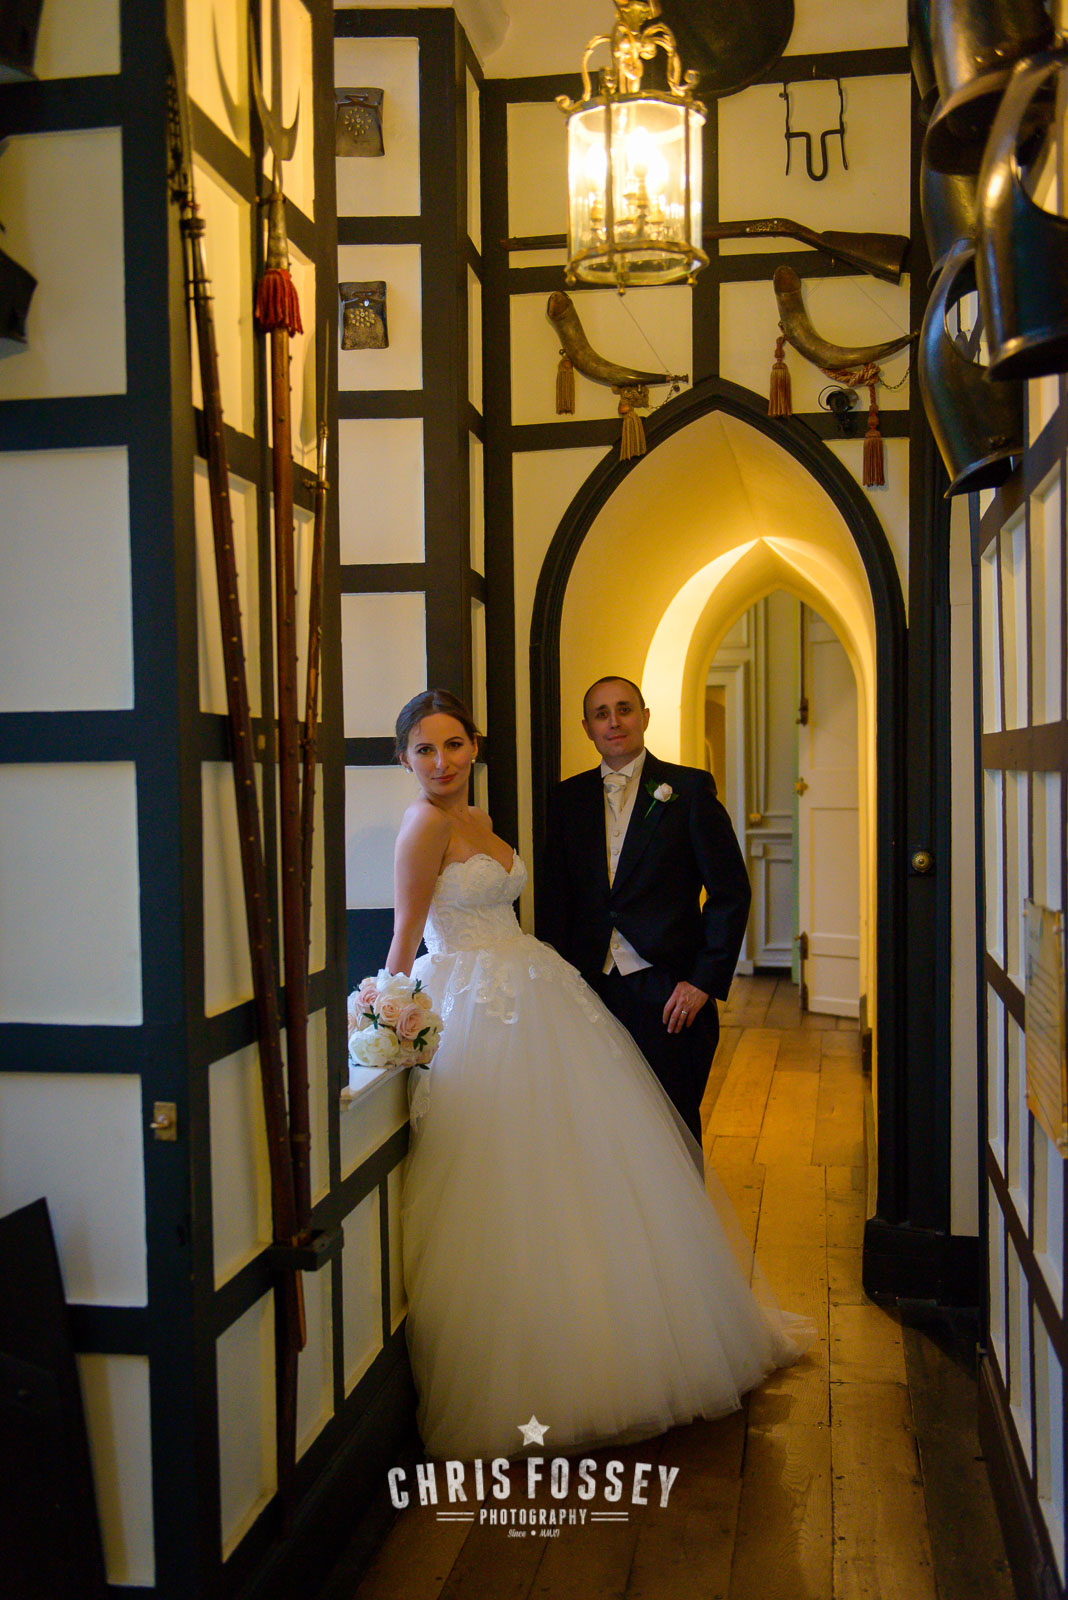 Warwick Castle Wedding Photography Warwickshire Wedding Photos by Chris Fossey Photography (119 of 137)